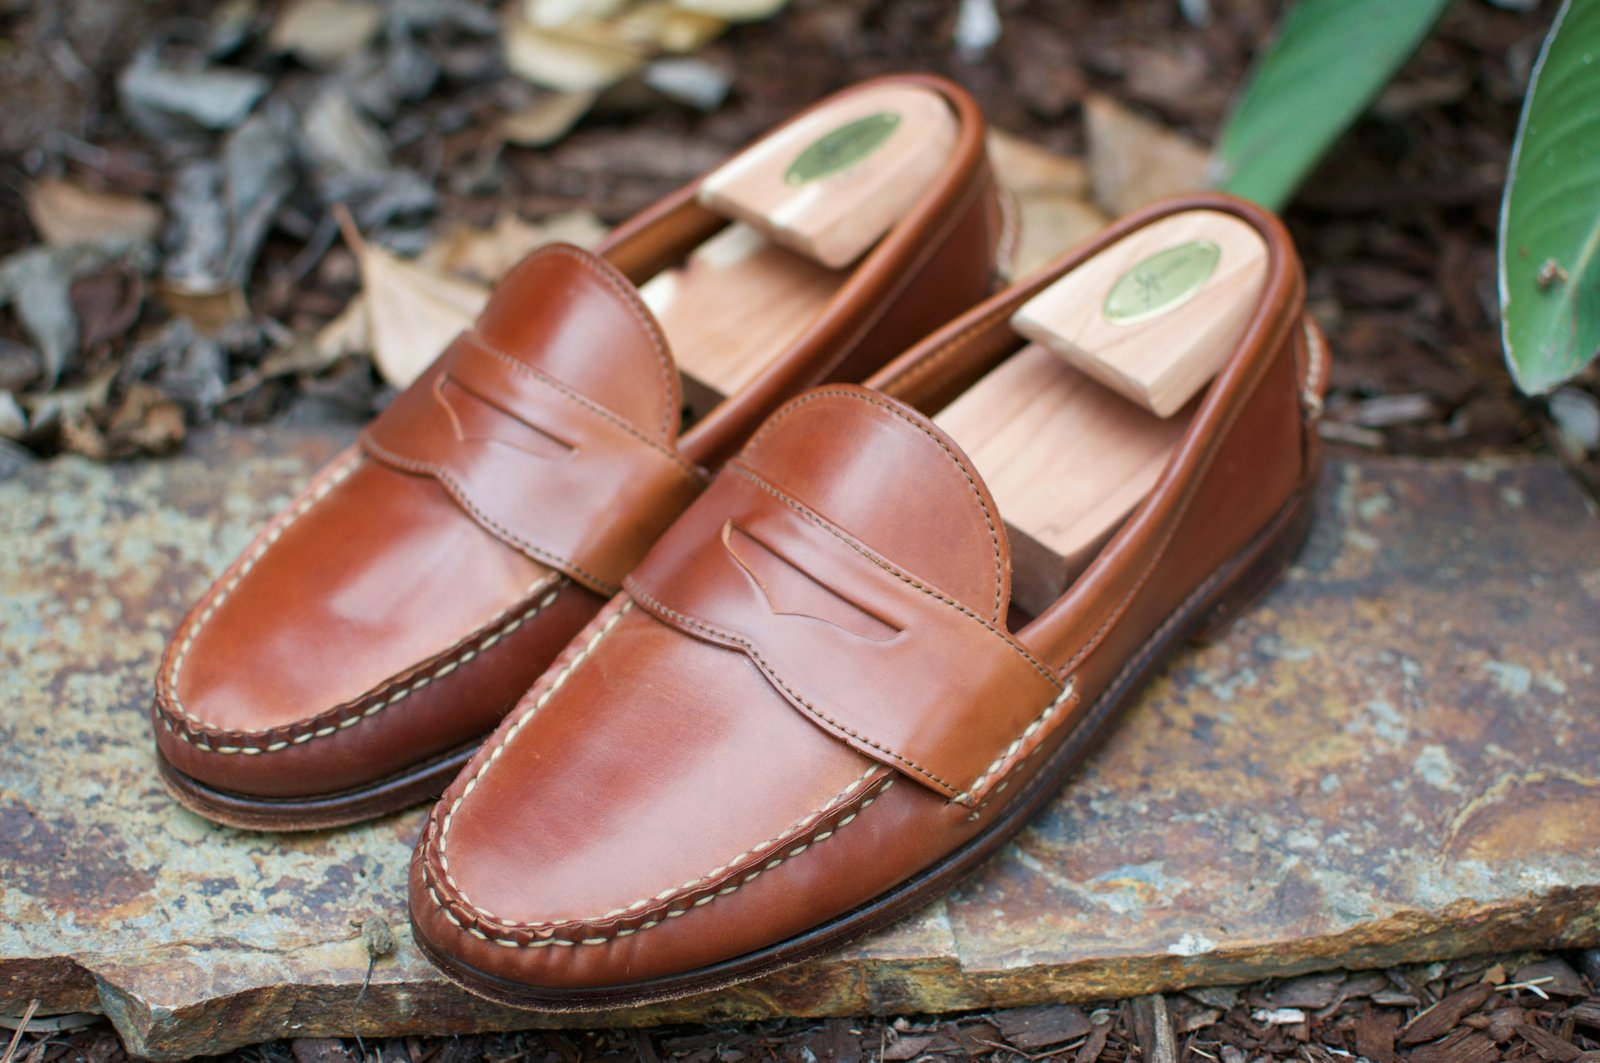 Rancourt x RL Natural Shell Cordovan Penny Pinch Loafers - 2020-07-17 - 2.jpg